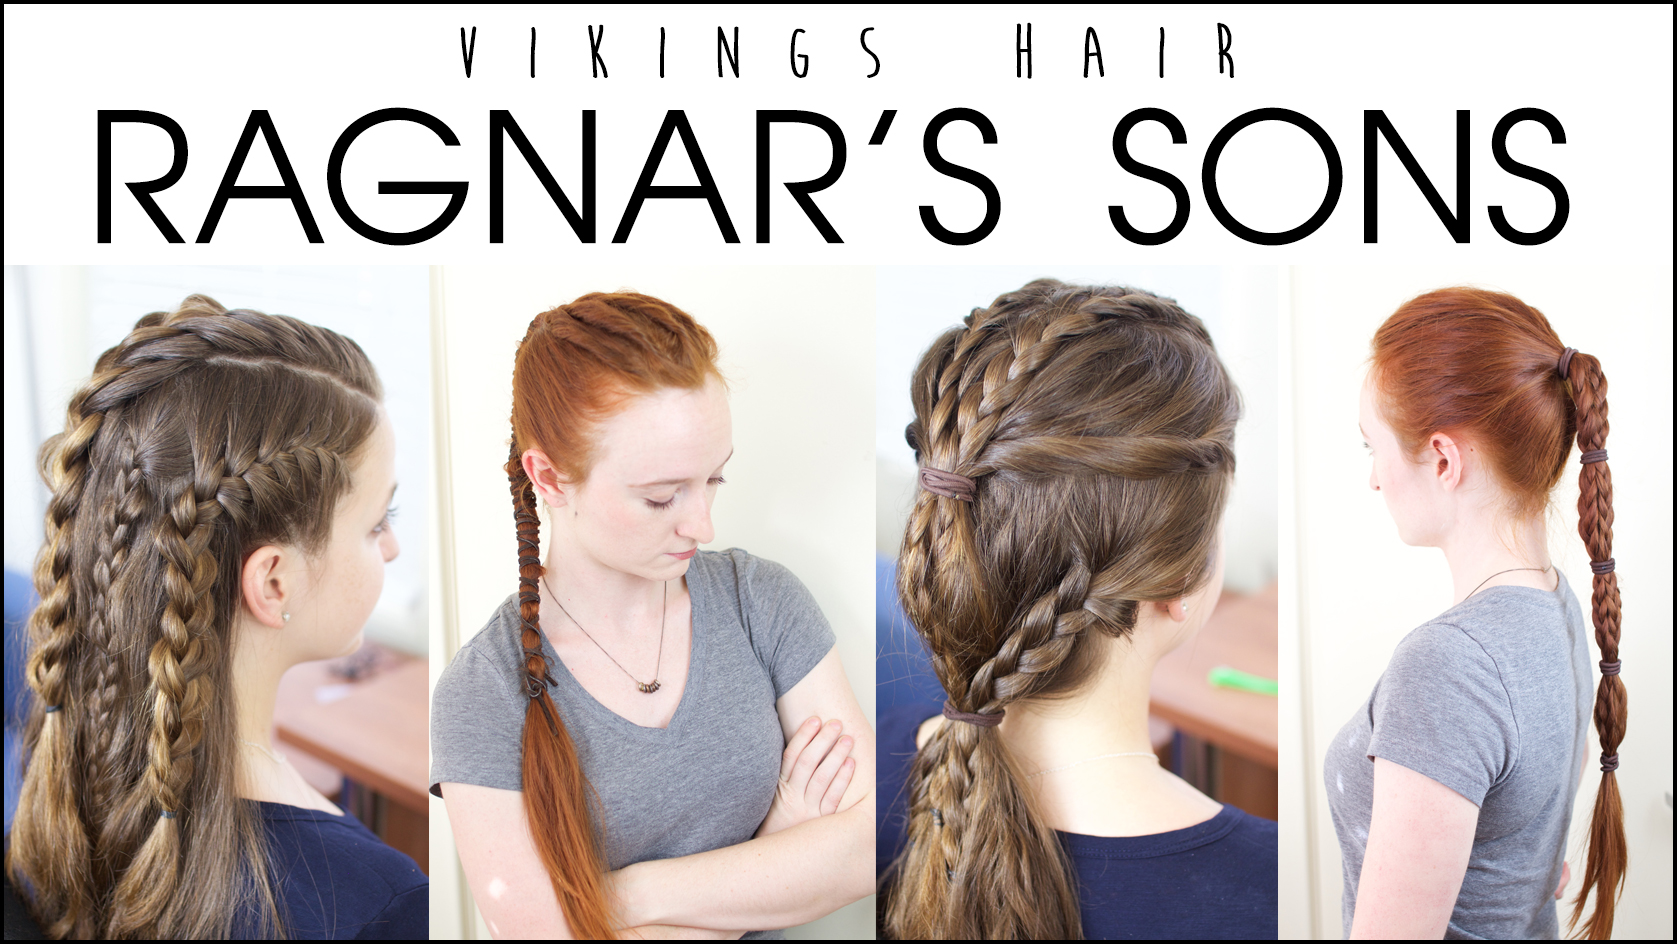 Silvousplaits Hairstyling Vikings Hairstyles Worn By Ragnar S Sons